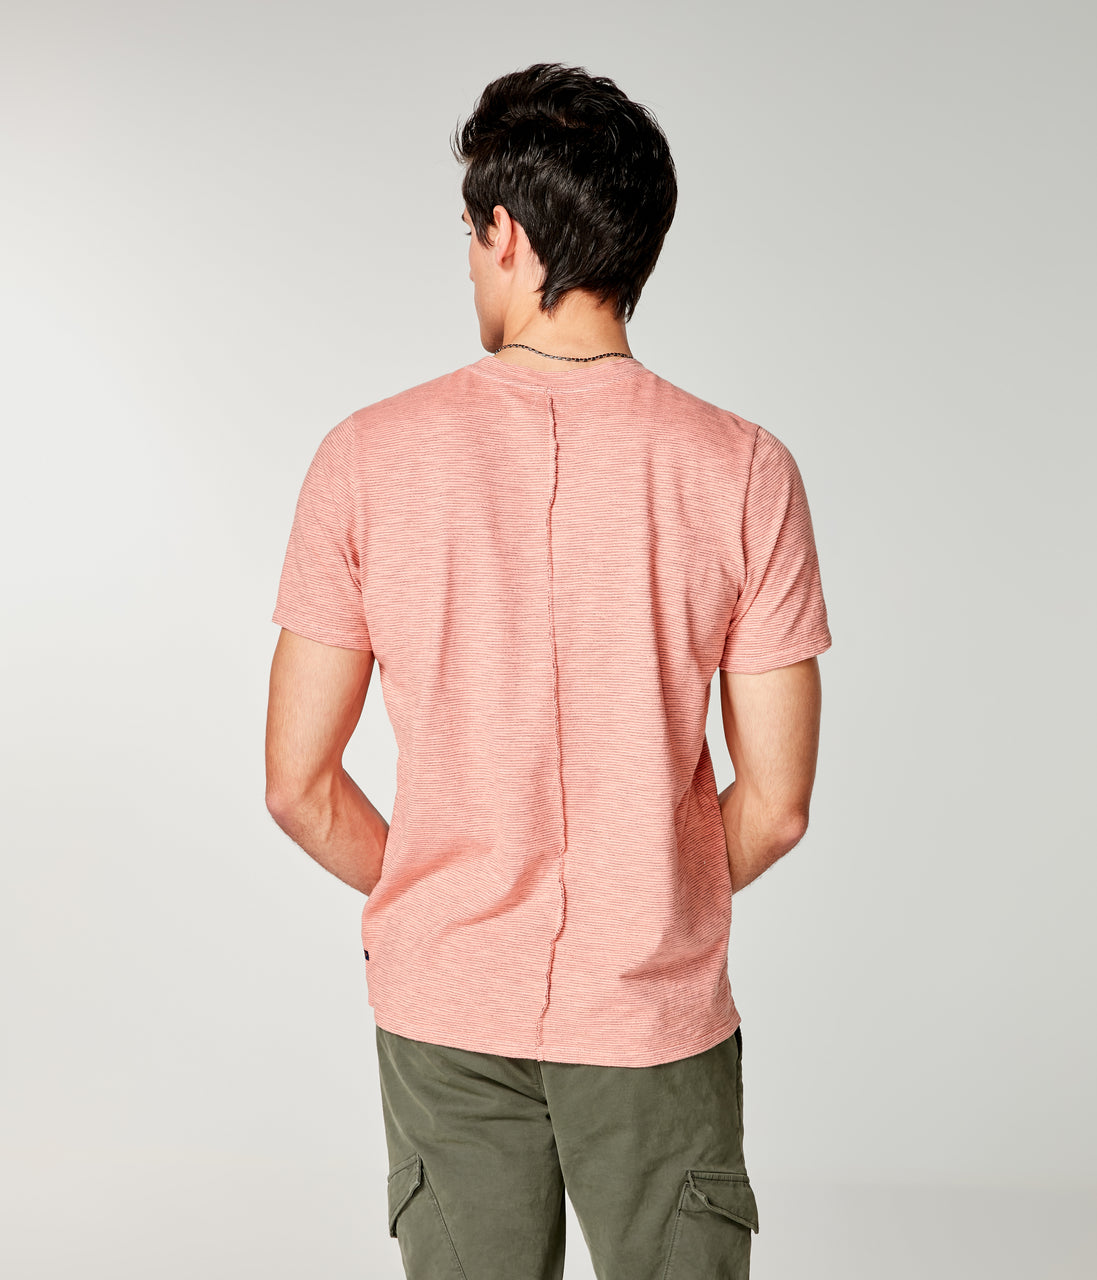 Shinjuku Razor Notch Neck Crew - Hibiscus - Good Man Brand - Shinjuku Razor Notch Neck Crew - Hibiscus